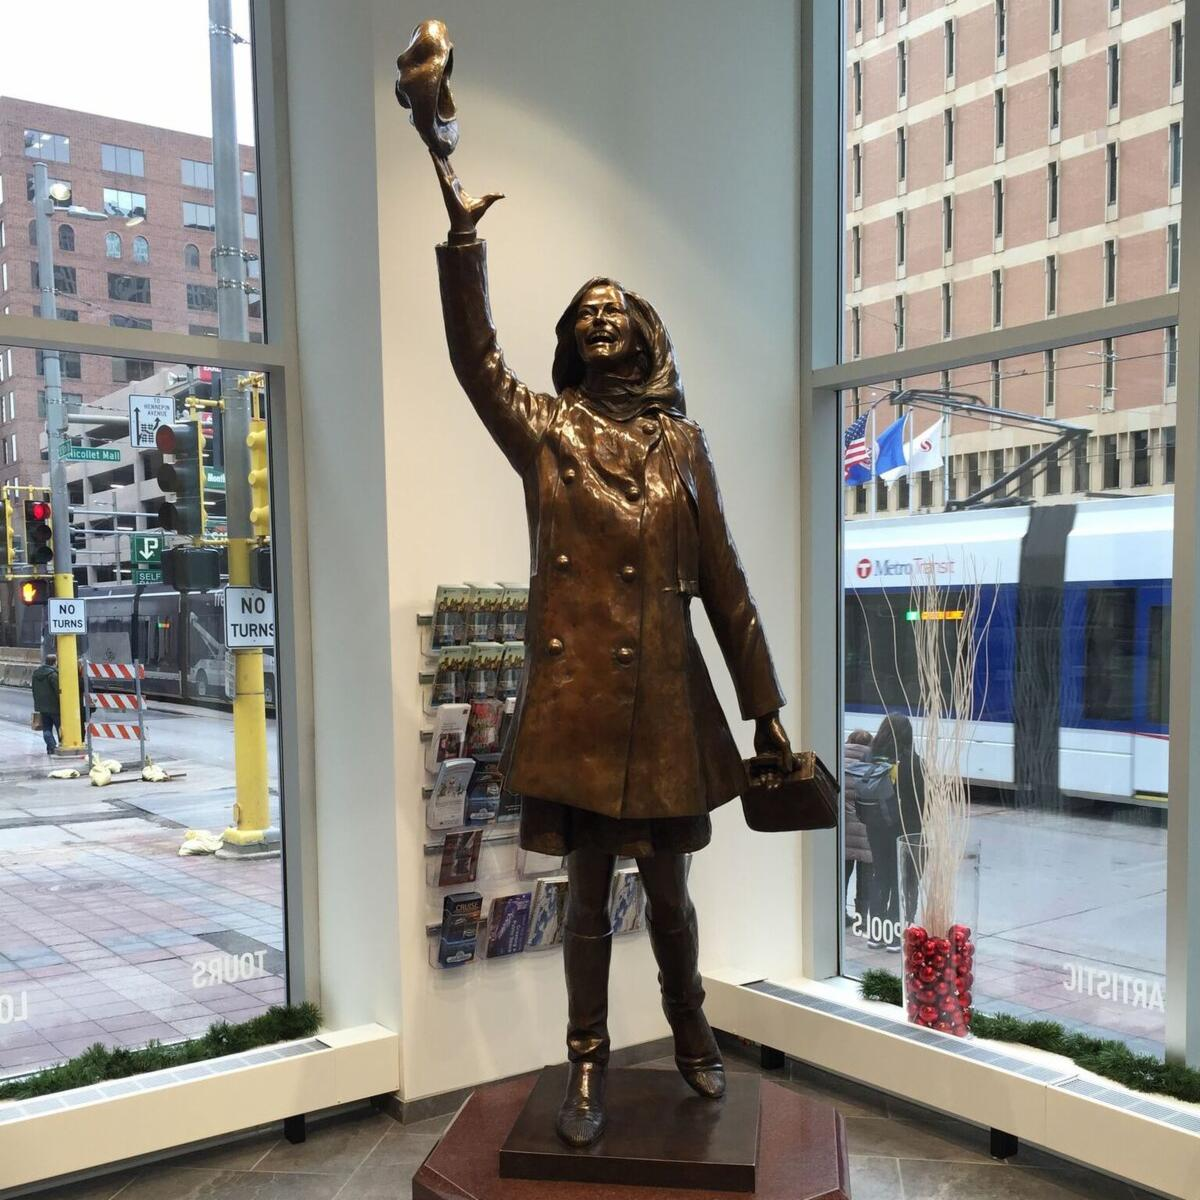 Hats off to a true #OnlyinMN legend. Rest in peace #MaryTylerMoore. https://t.co/IFCfVZW4Dr